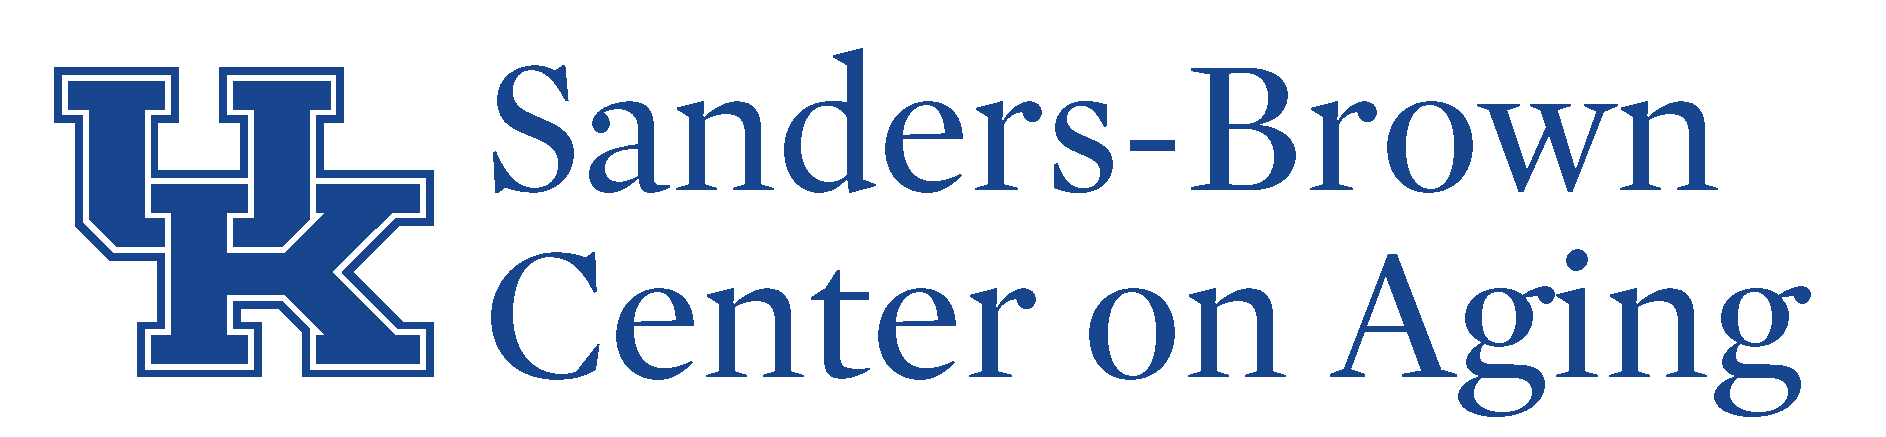 University of Kentucky ADRC, Sanders-Brown Center on Aging Clinic